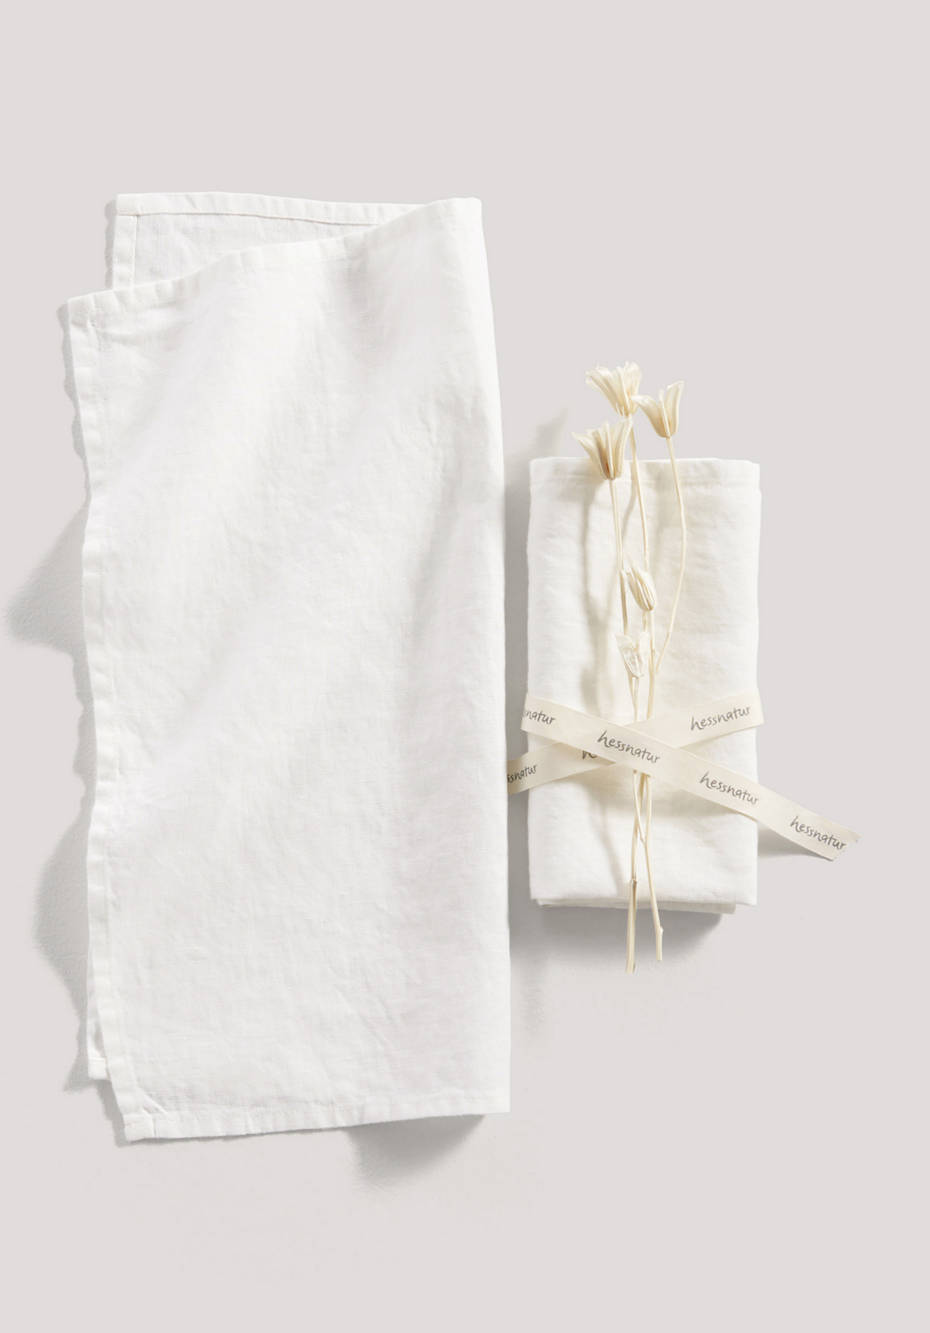 Linen napkins in a set of 2